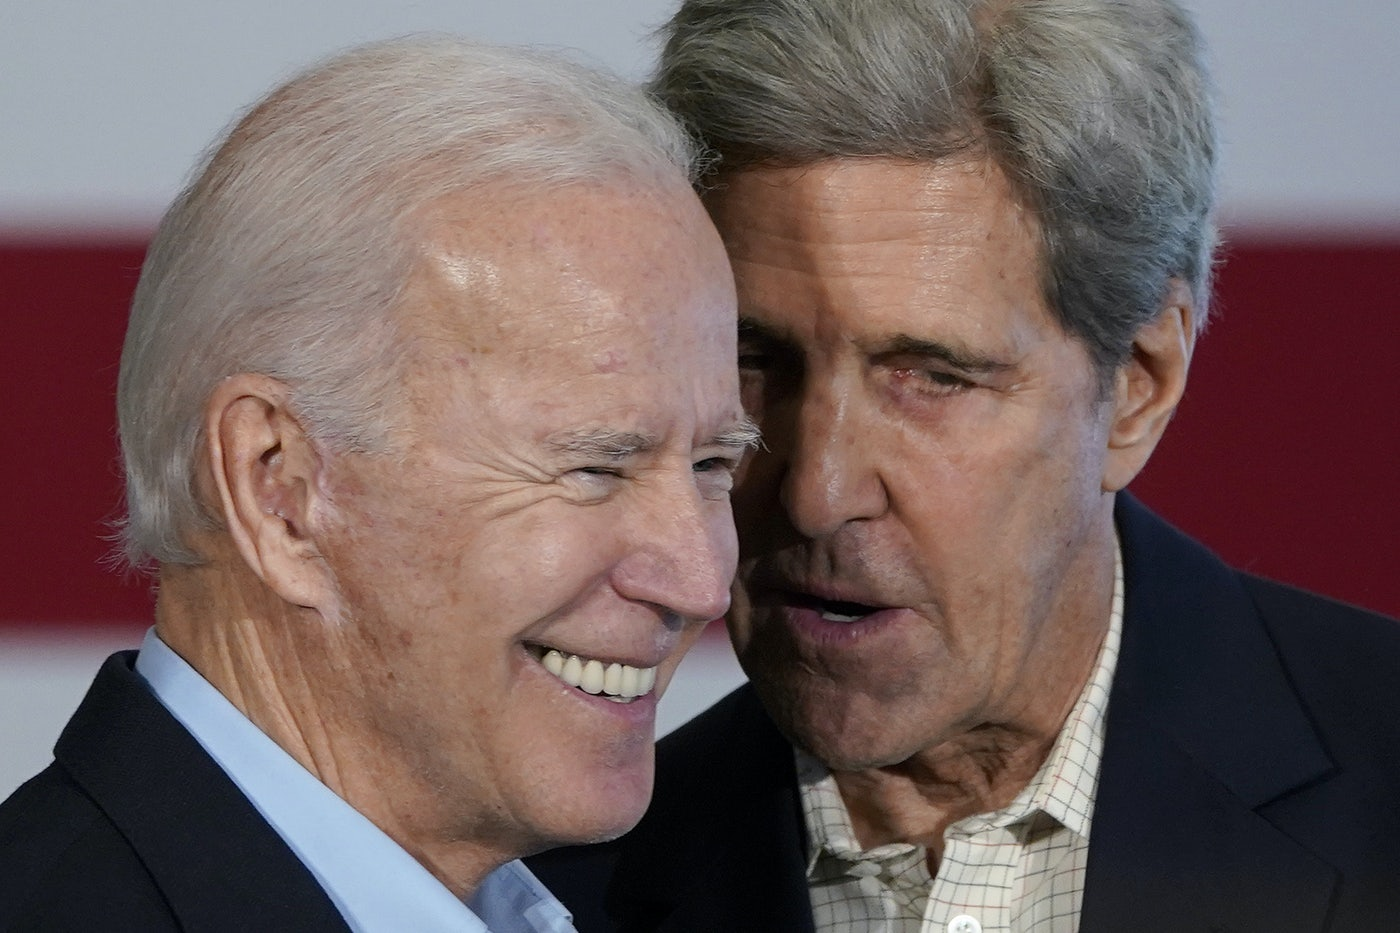 John Kerry speaks to Joe Biden.